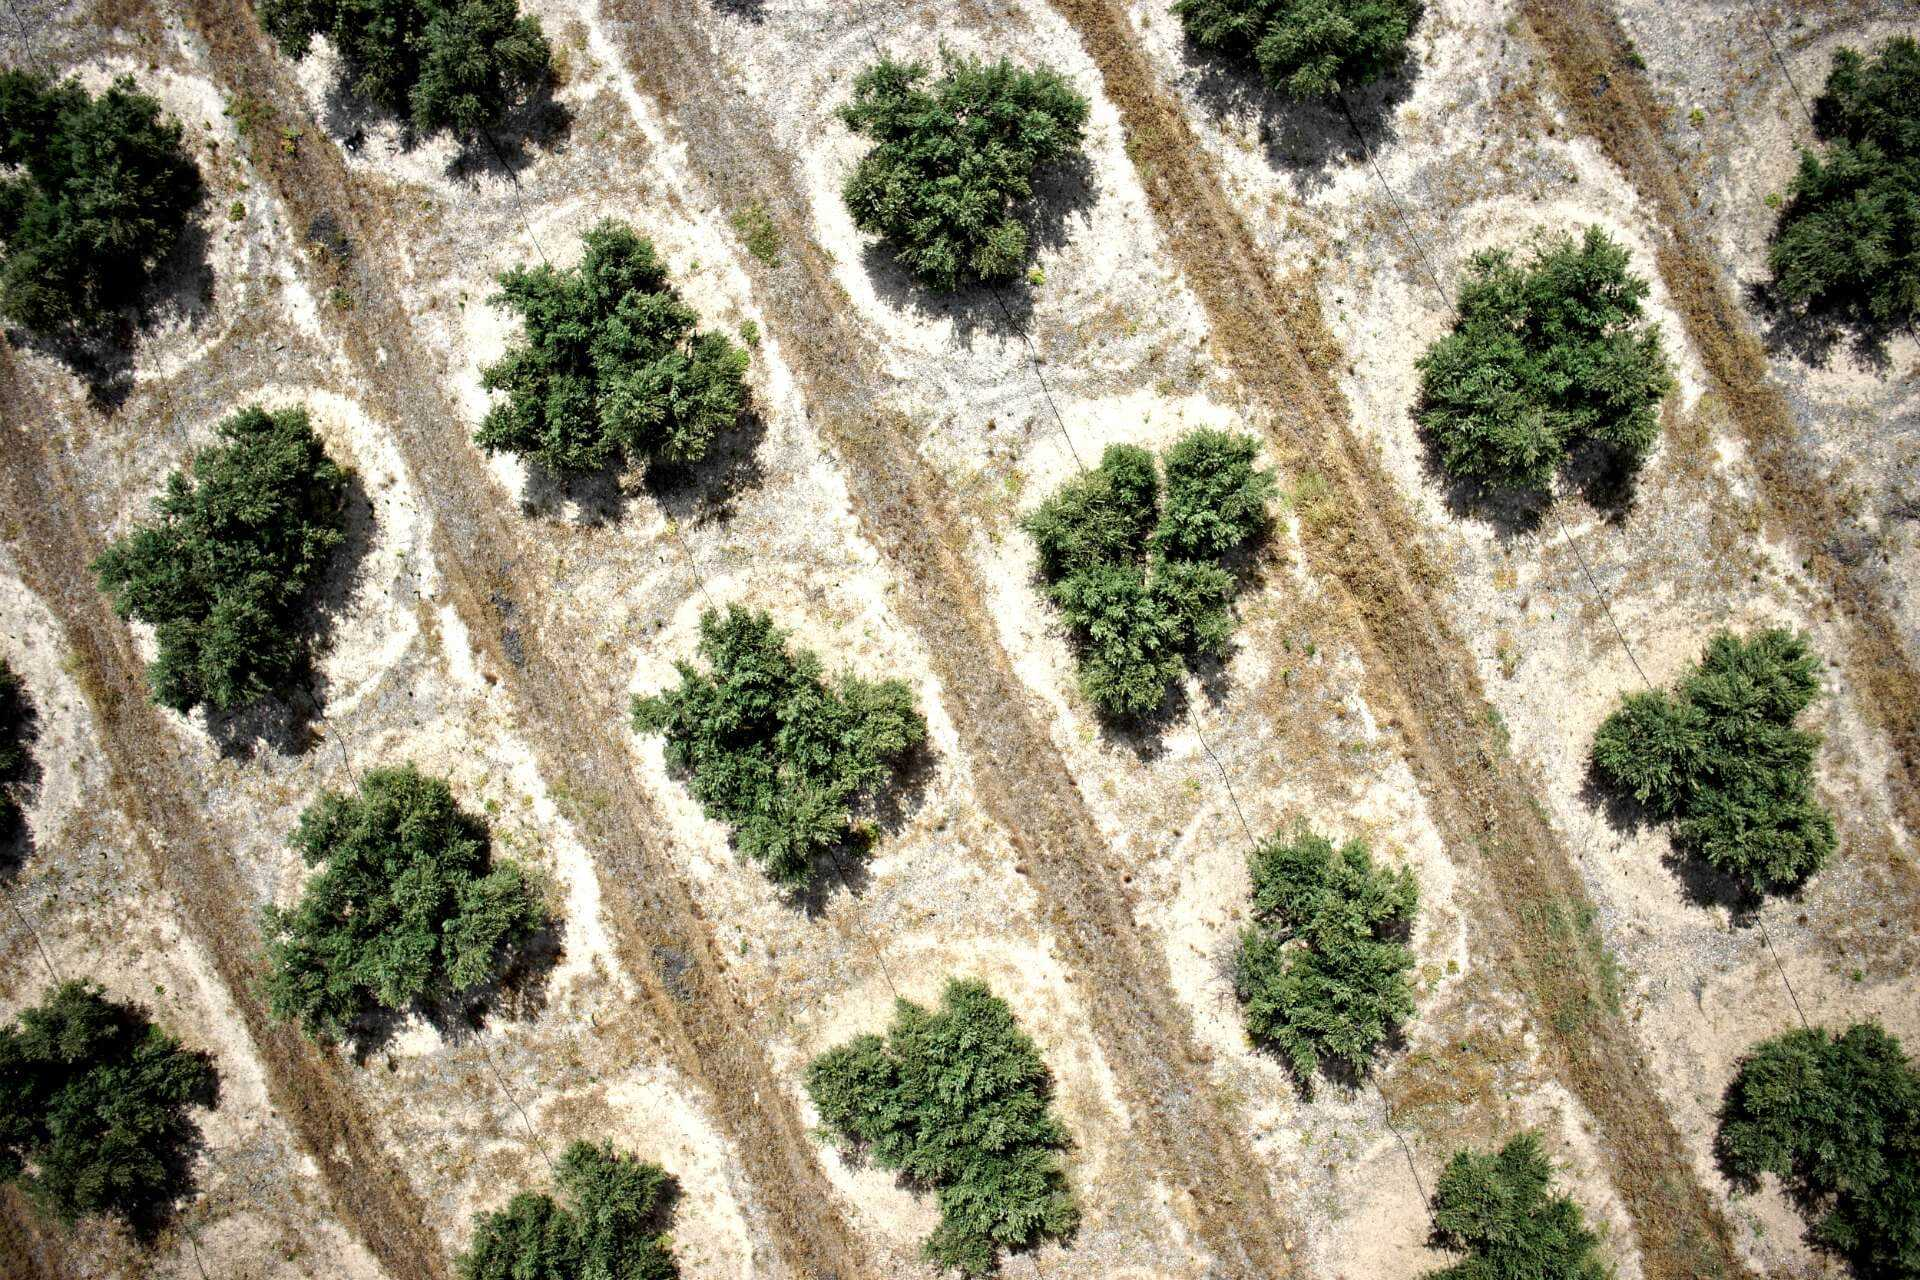 drones-carry-spanish-producers-into-the-next-era-of-olive-farming